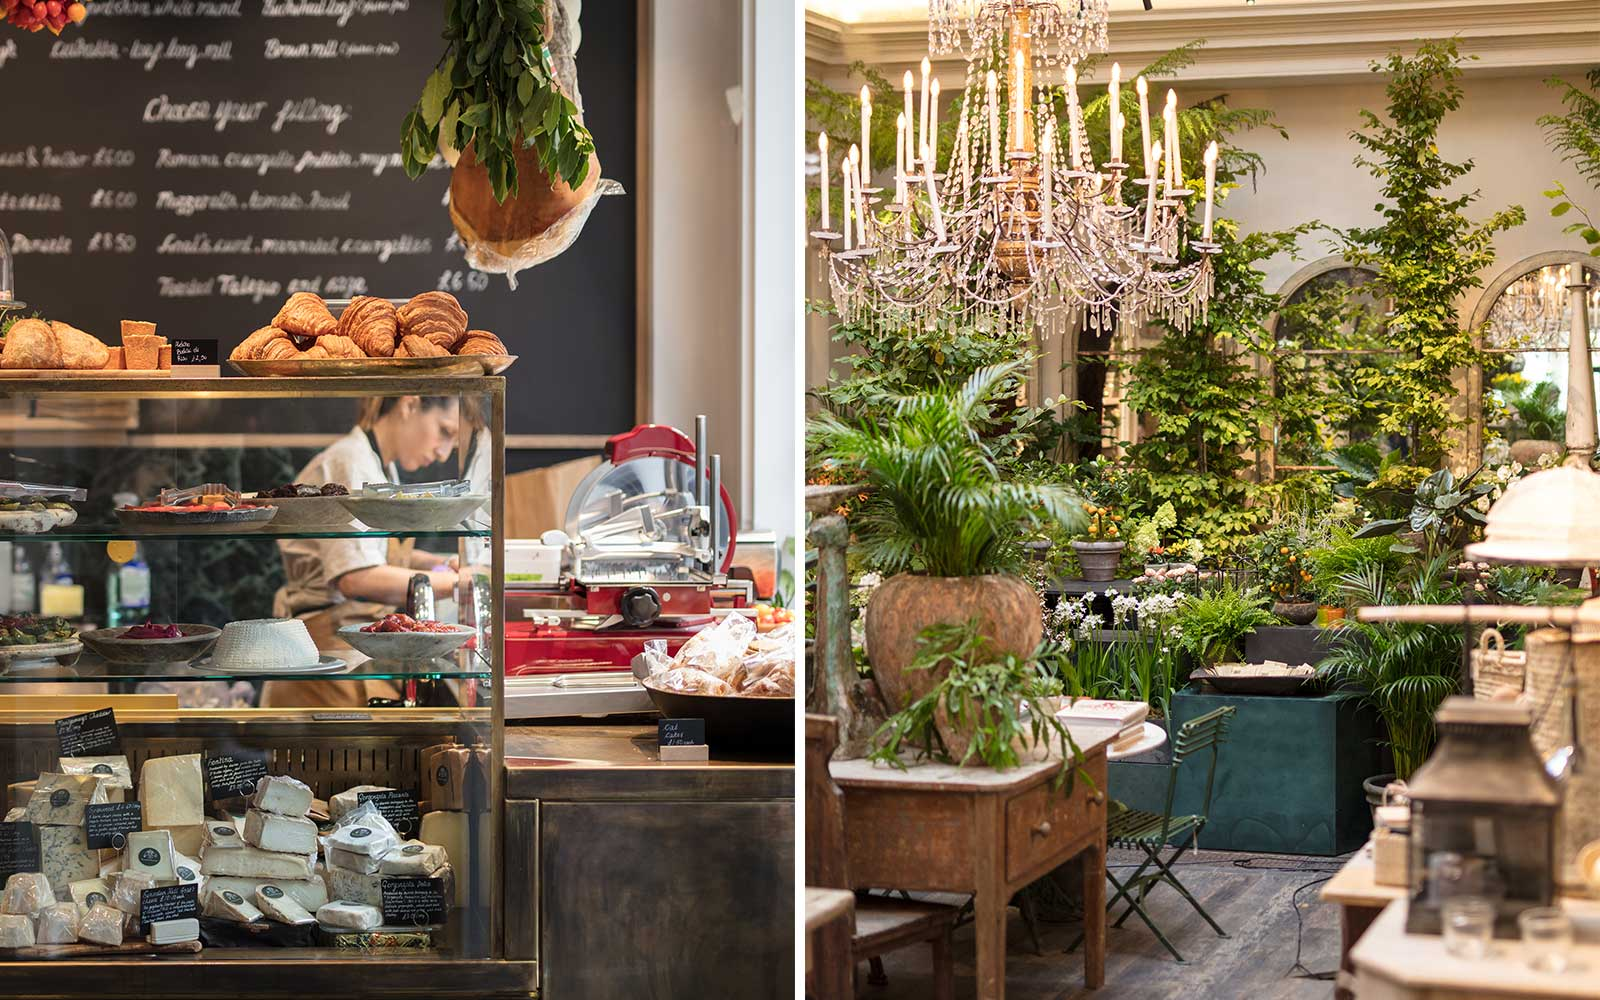 Scenes from Petersham Nurseries in London's Covent Garden